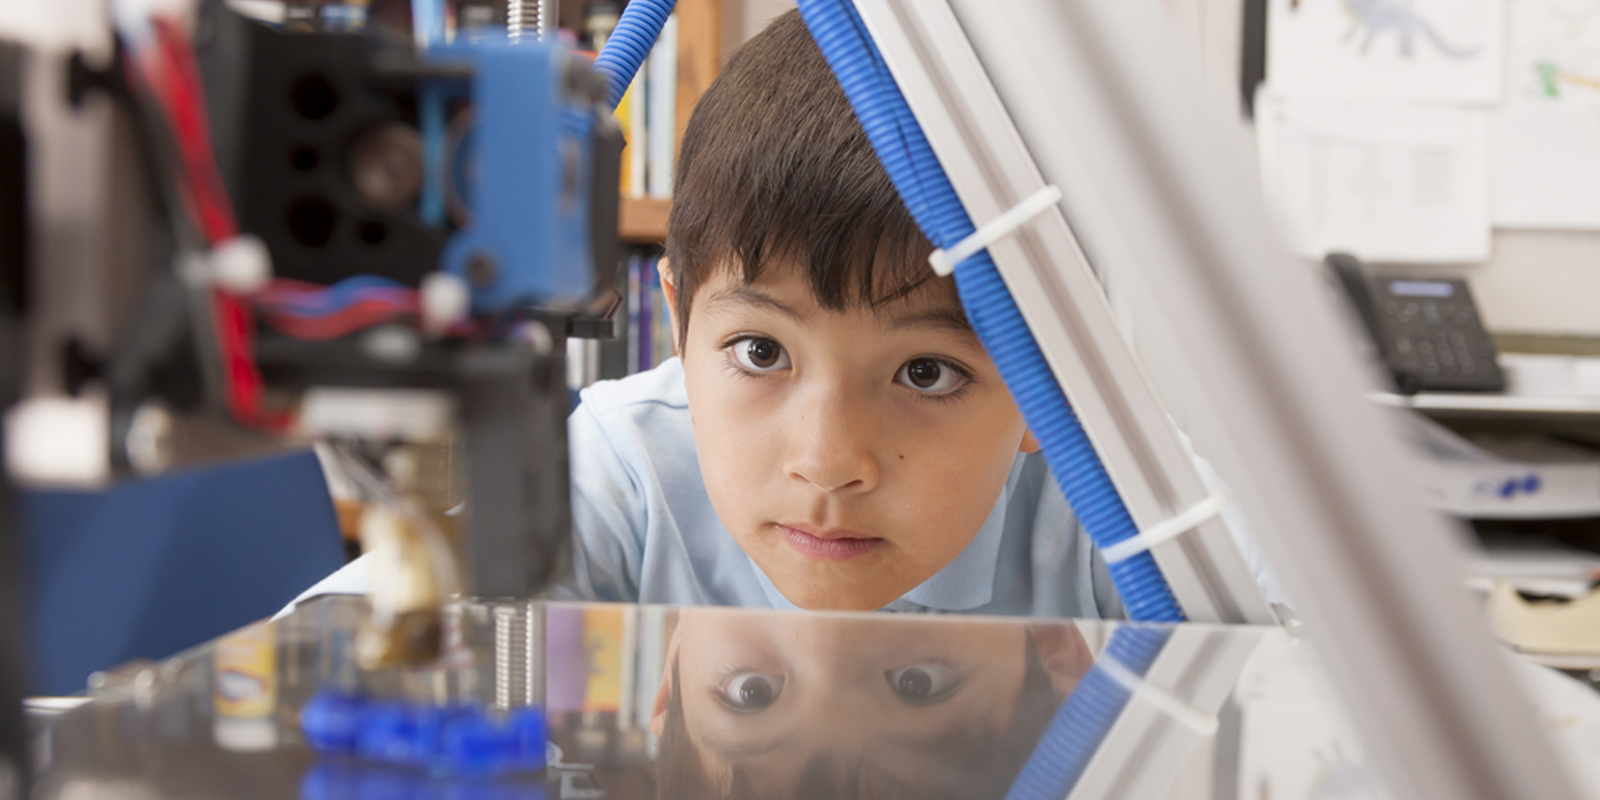 Boy looking at Science Equipment